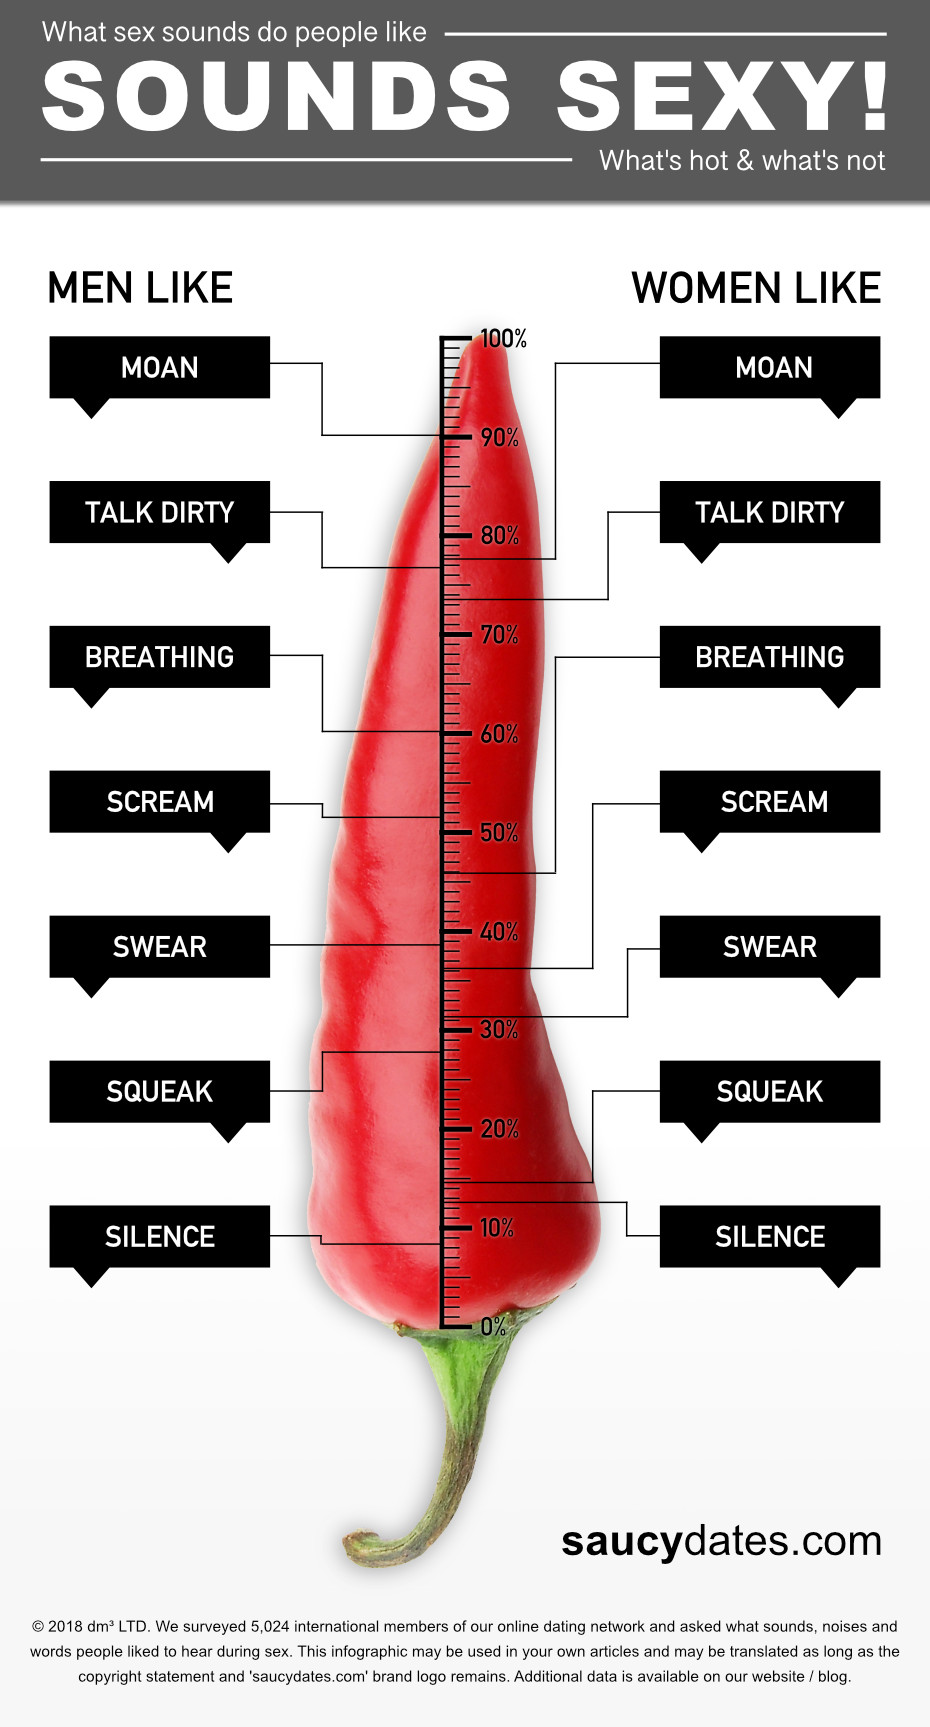 Sex talk and sounds infographic